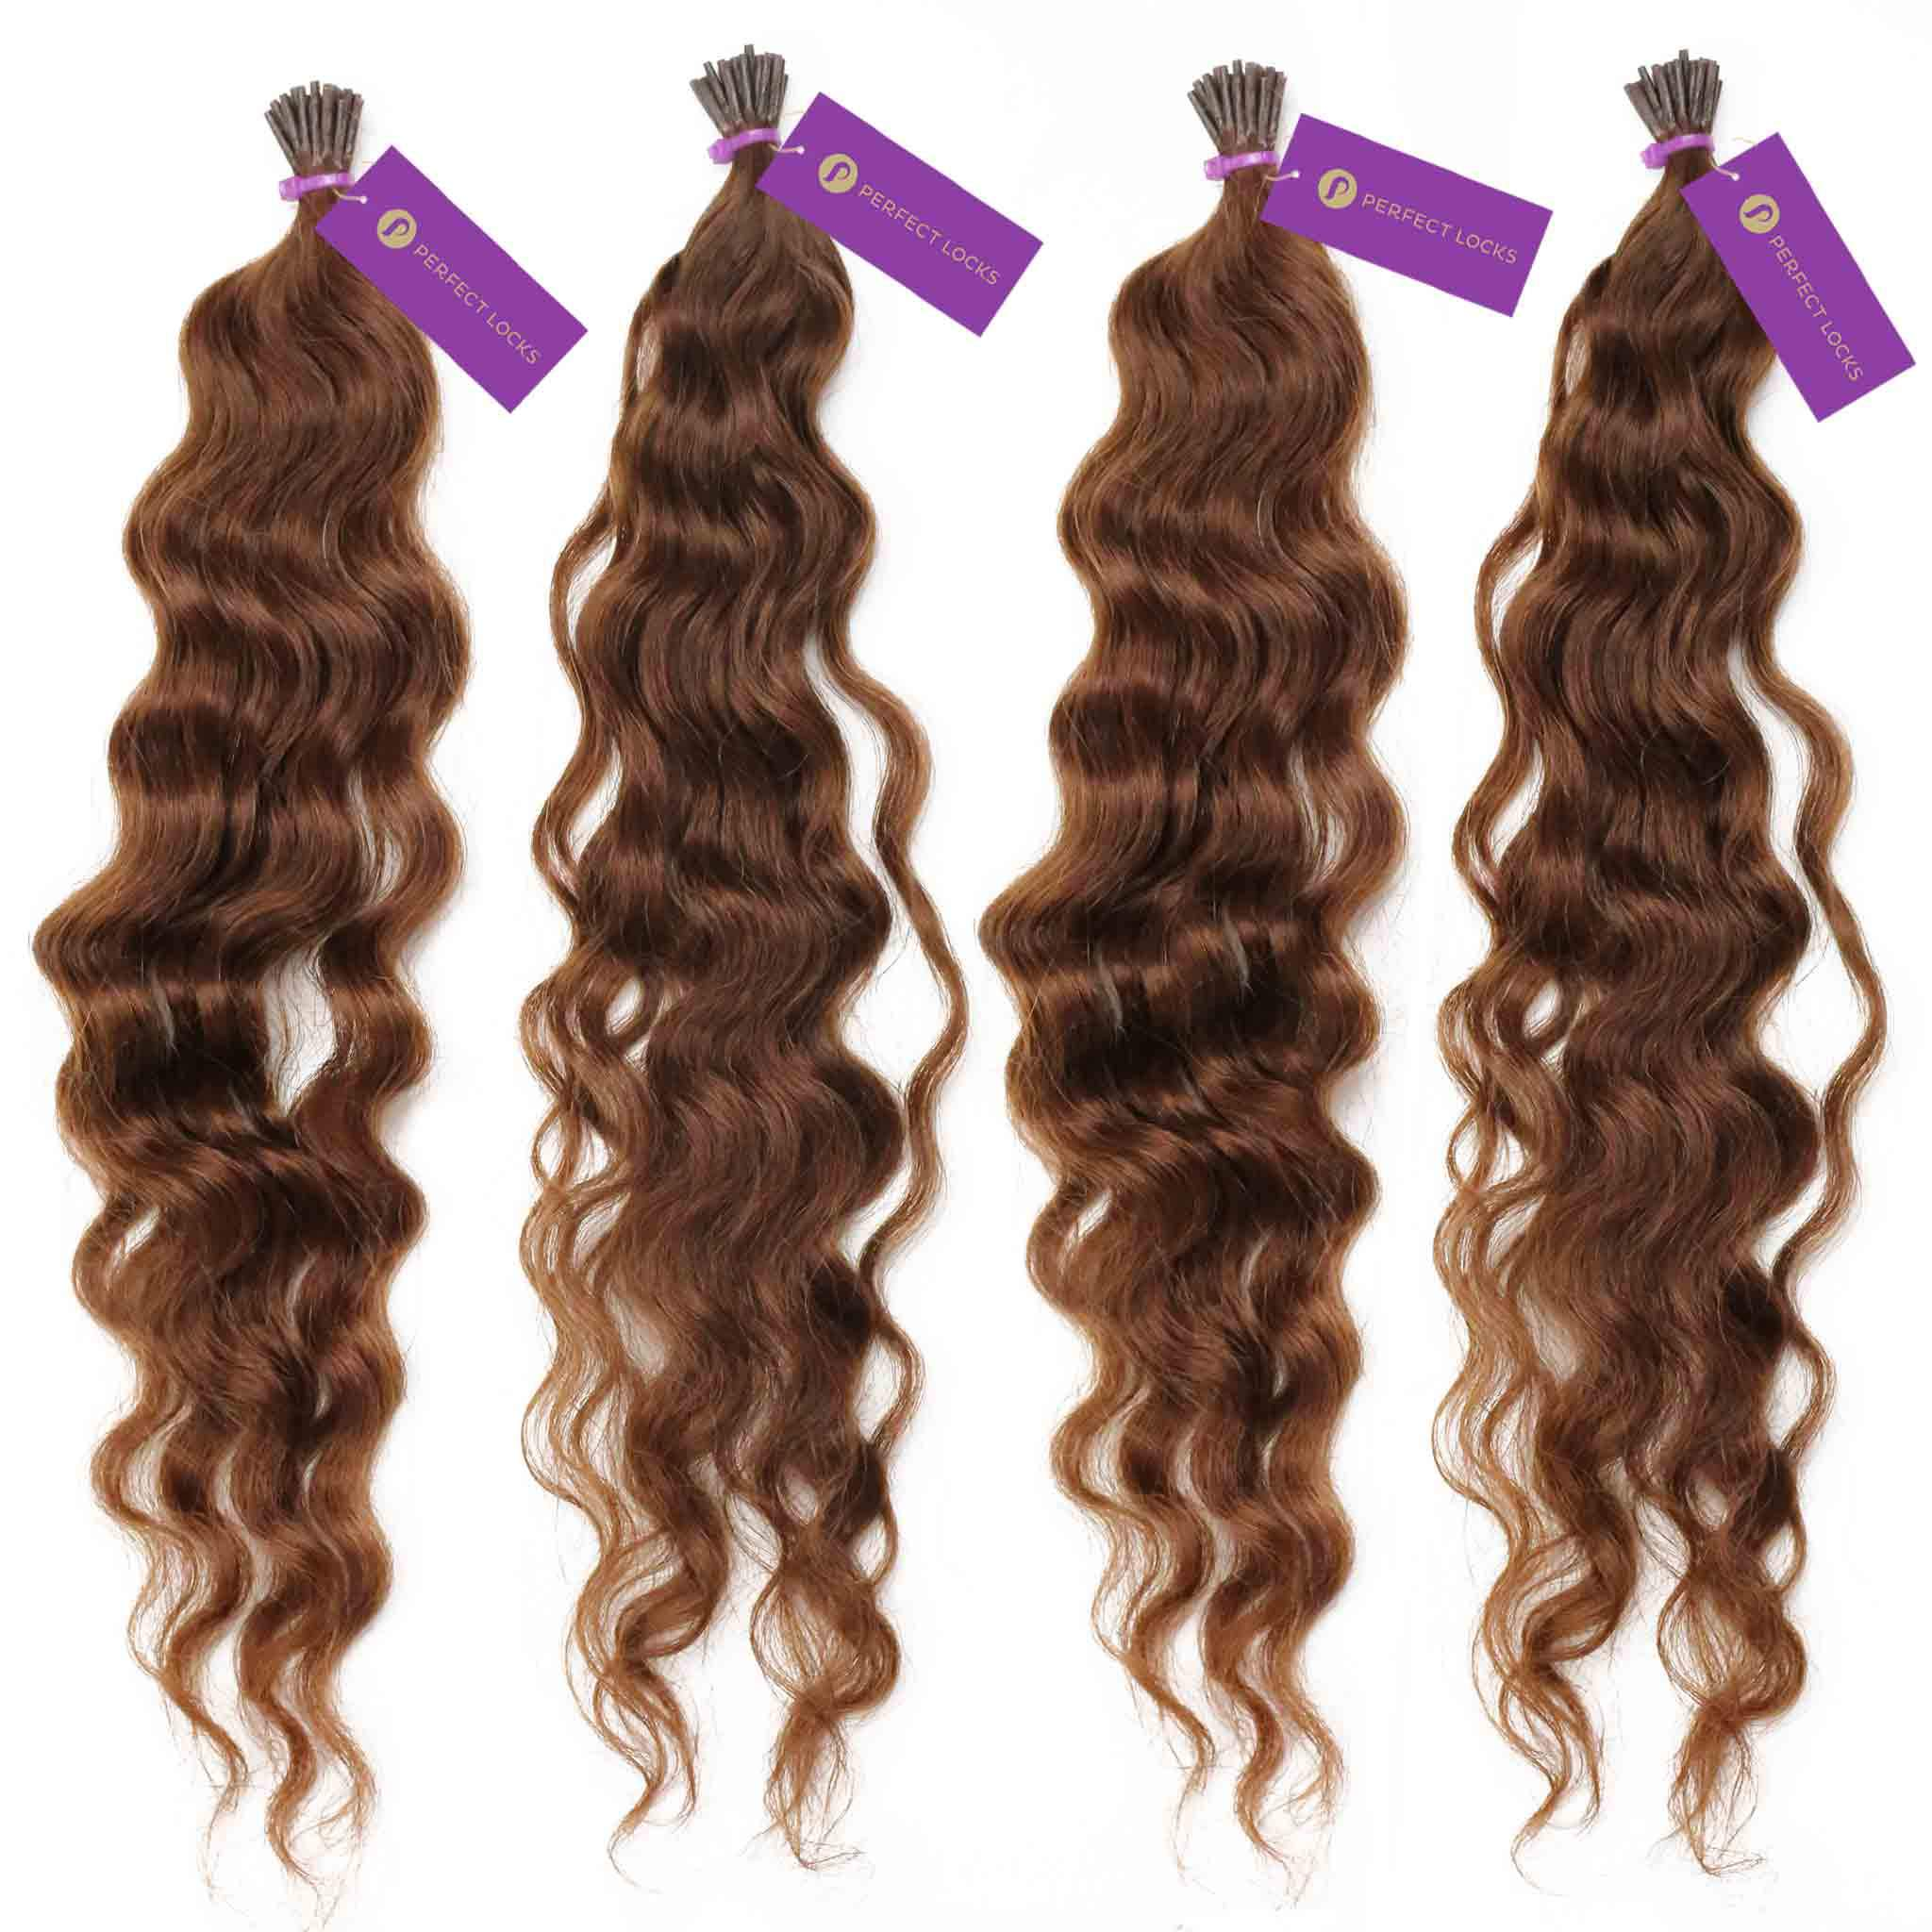 4 X Curly Fusion I Tip Hair Extension Bundle Deal Fusion Hair